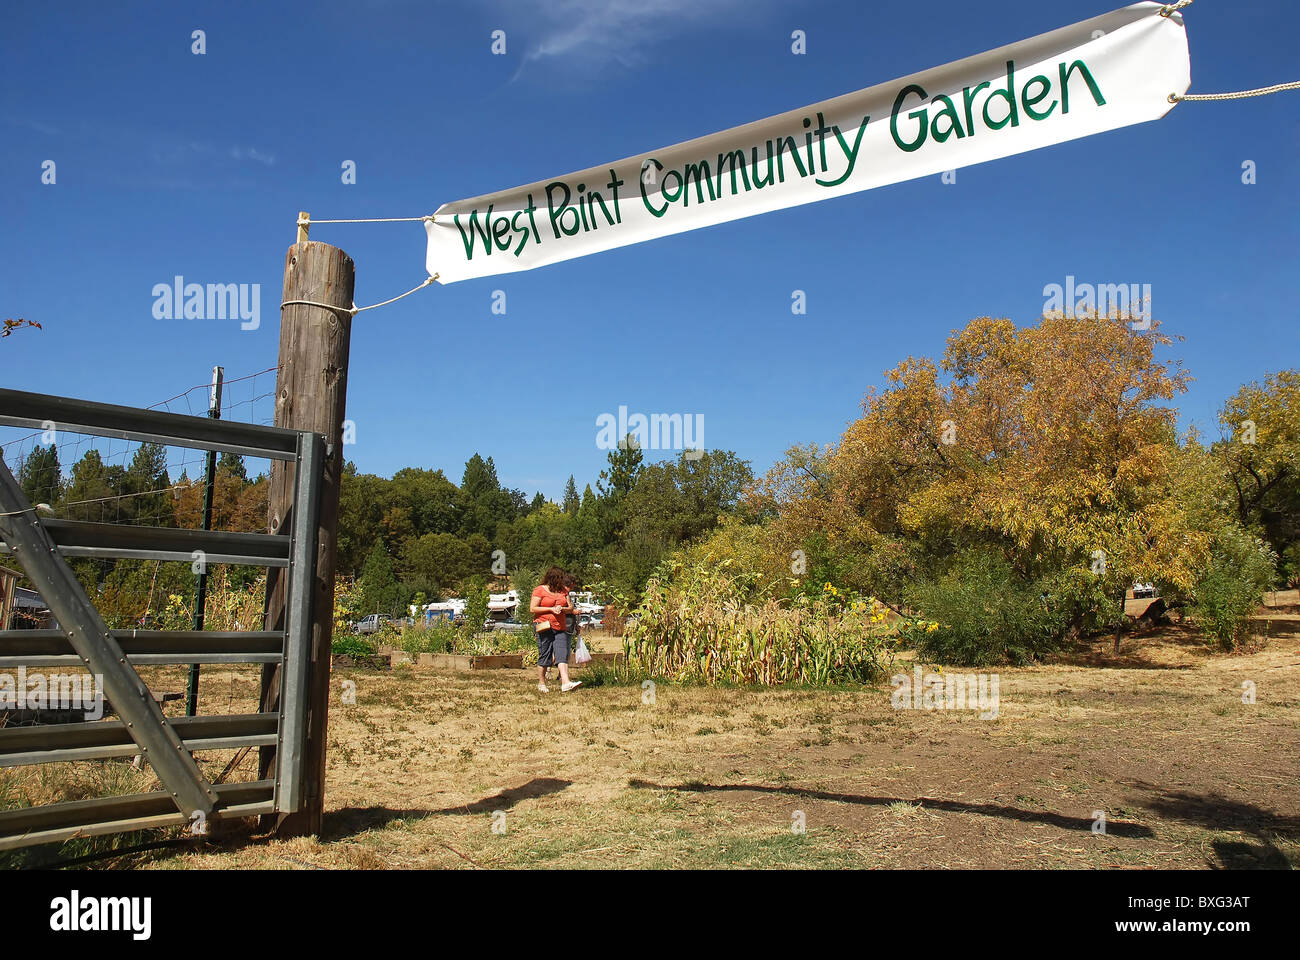 Entrance to Community Garden in West Point, California Stock Photo